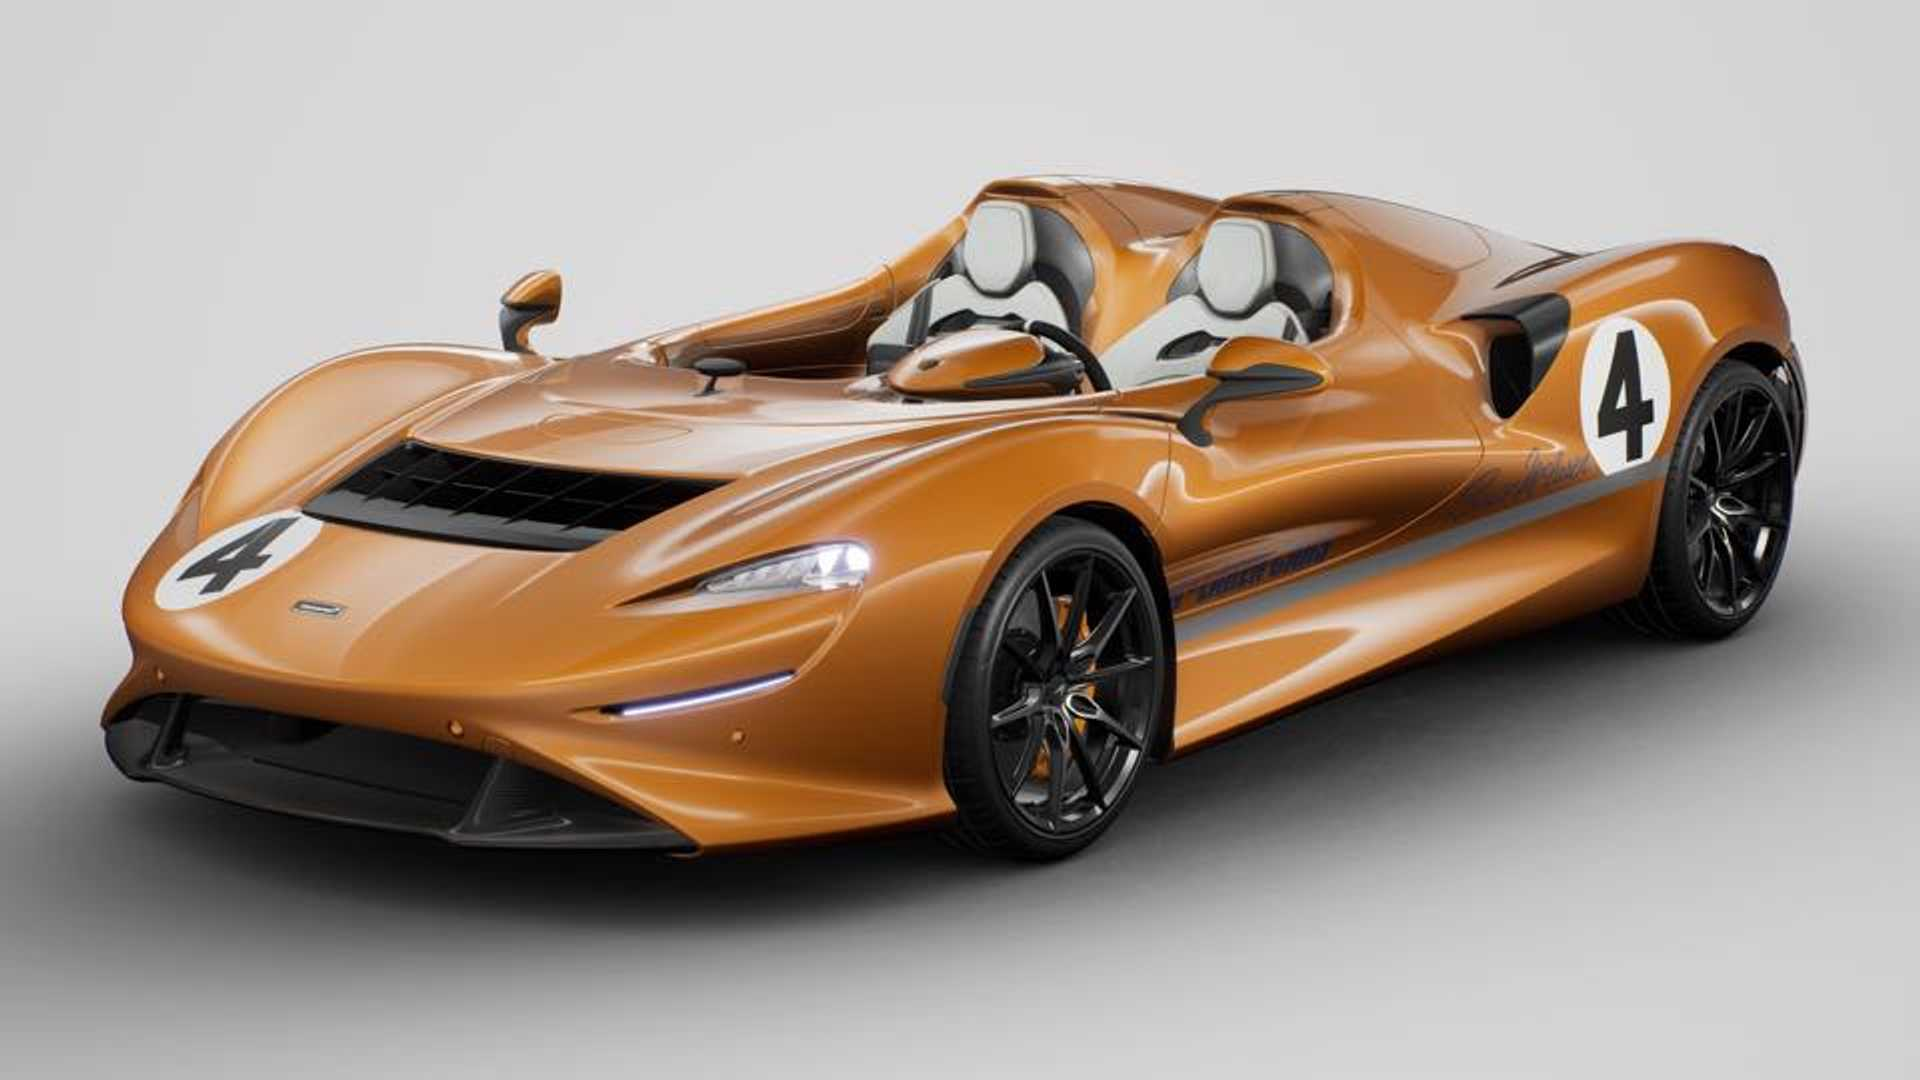 McLaren's Latest One-Off Vanity Project Is Very Orange And Finally Makes Sense To Me